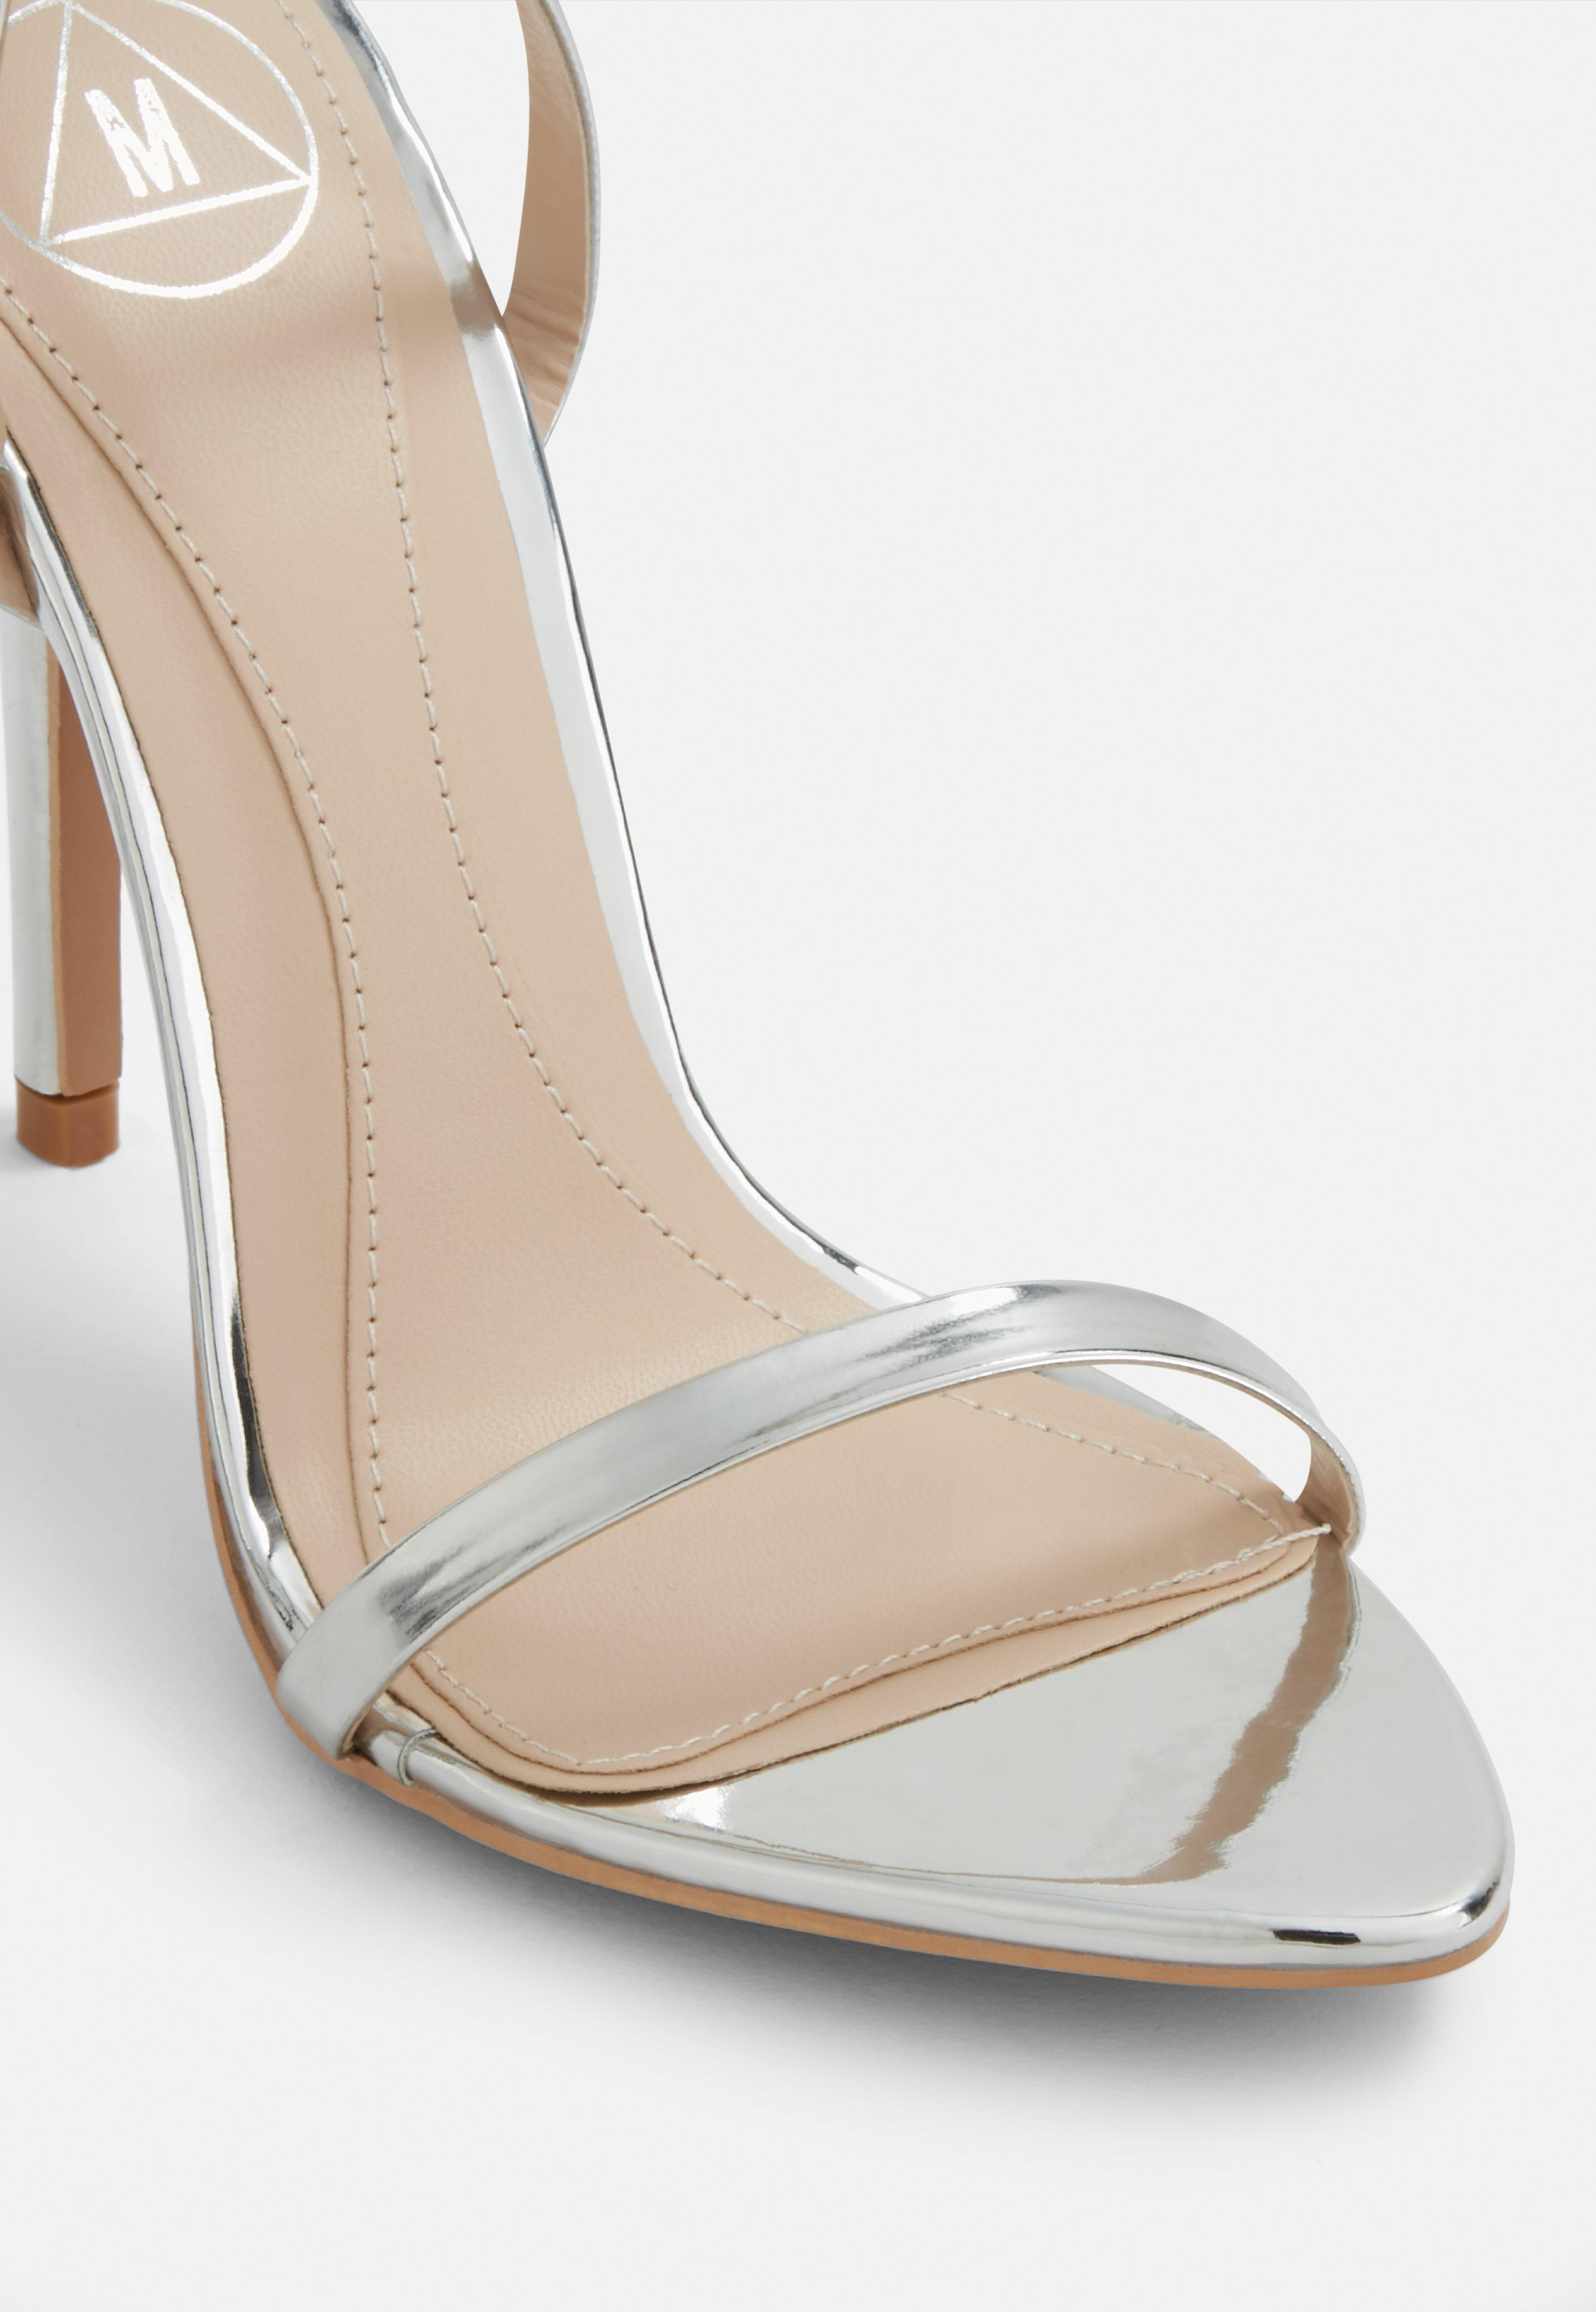 180abea60df Lyst - Missguided Silver Pointed Toe Barely There Heels in Metallic